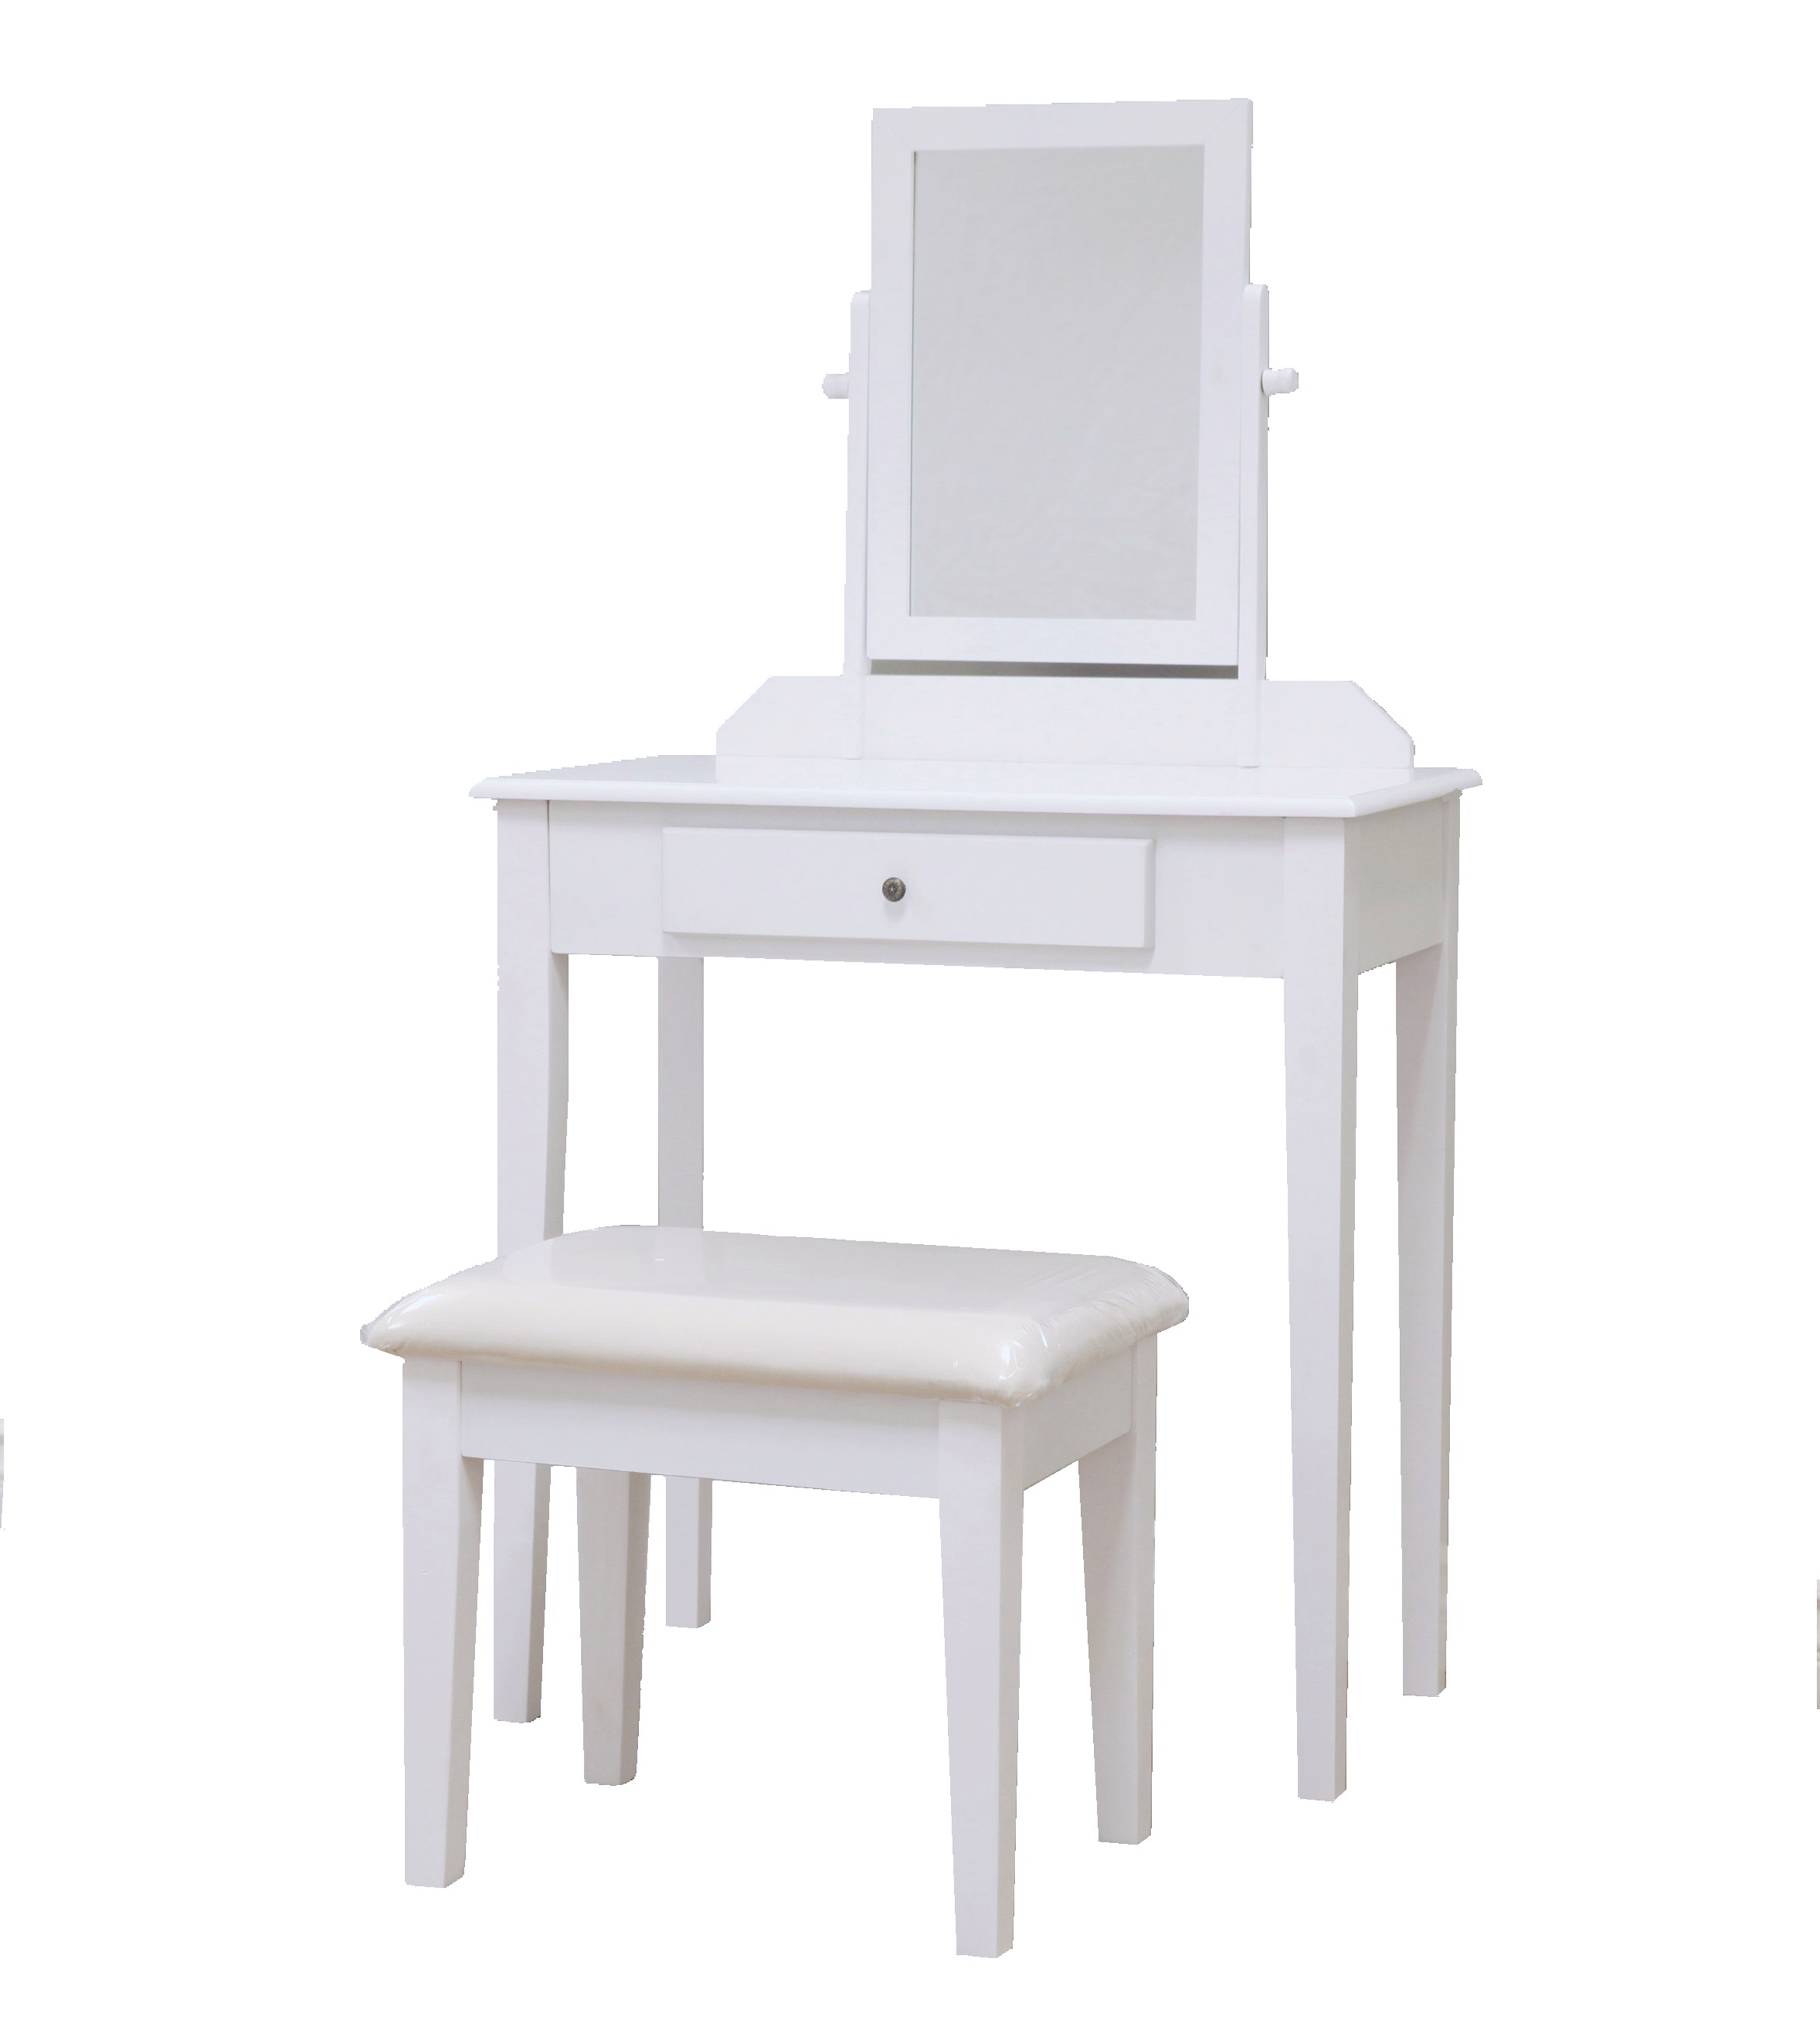 Bedroom Vanities - Walmart.com